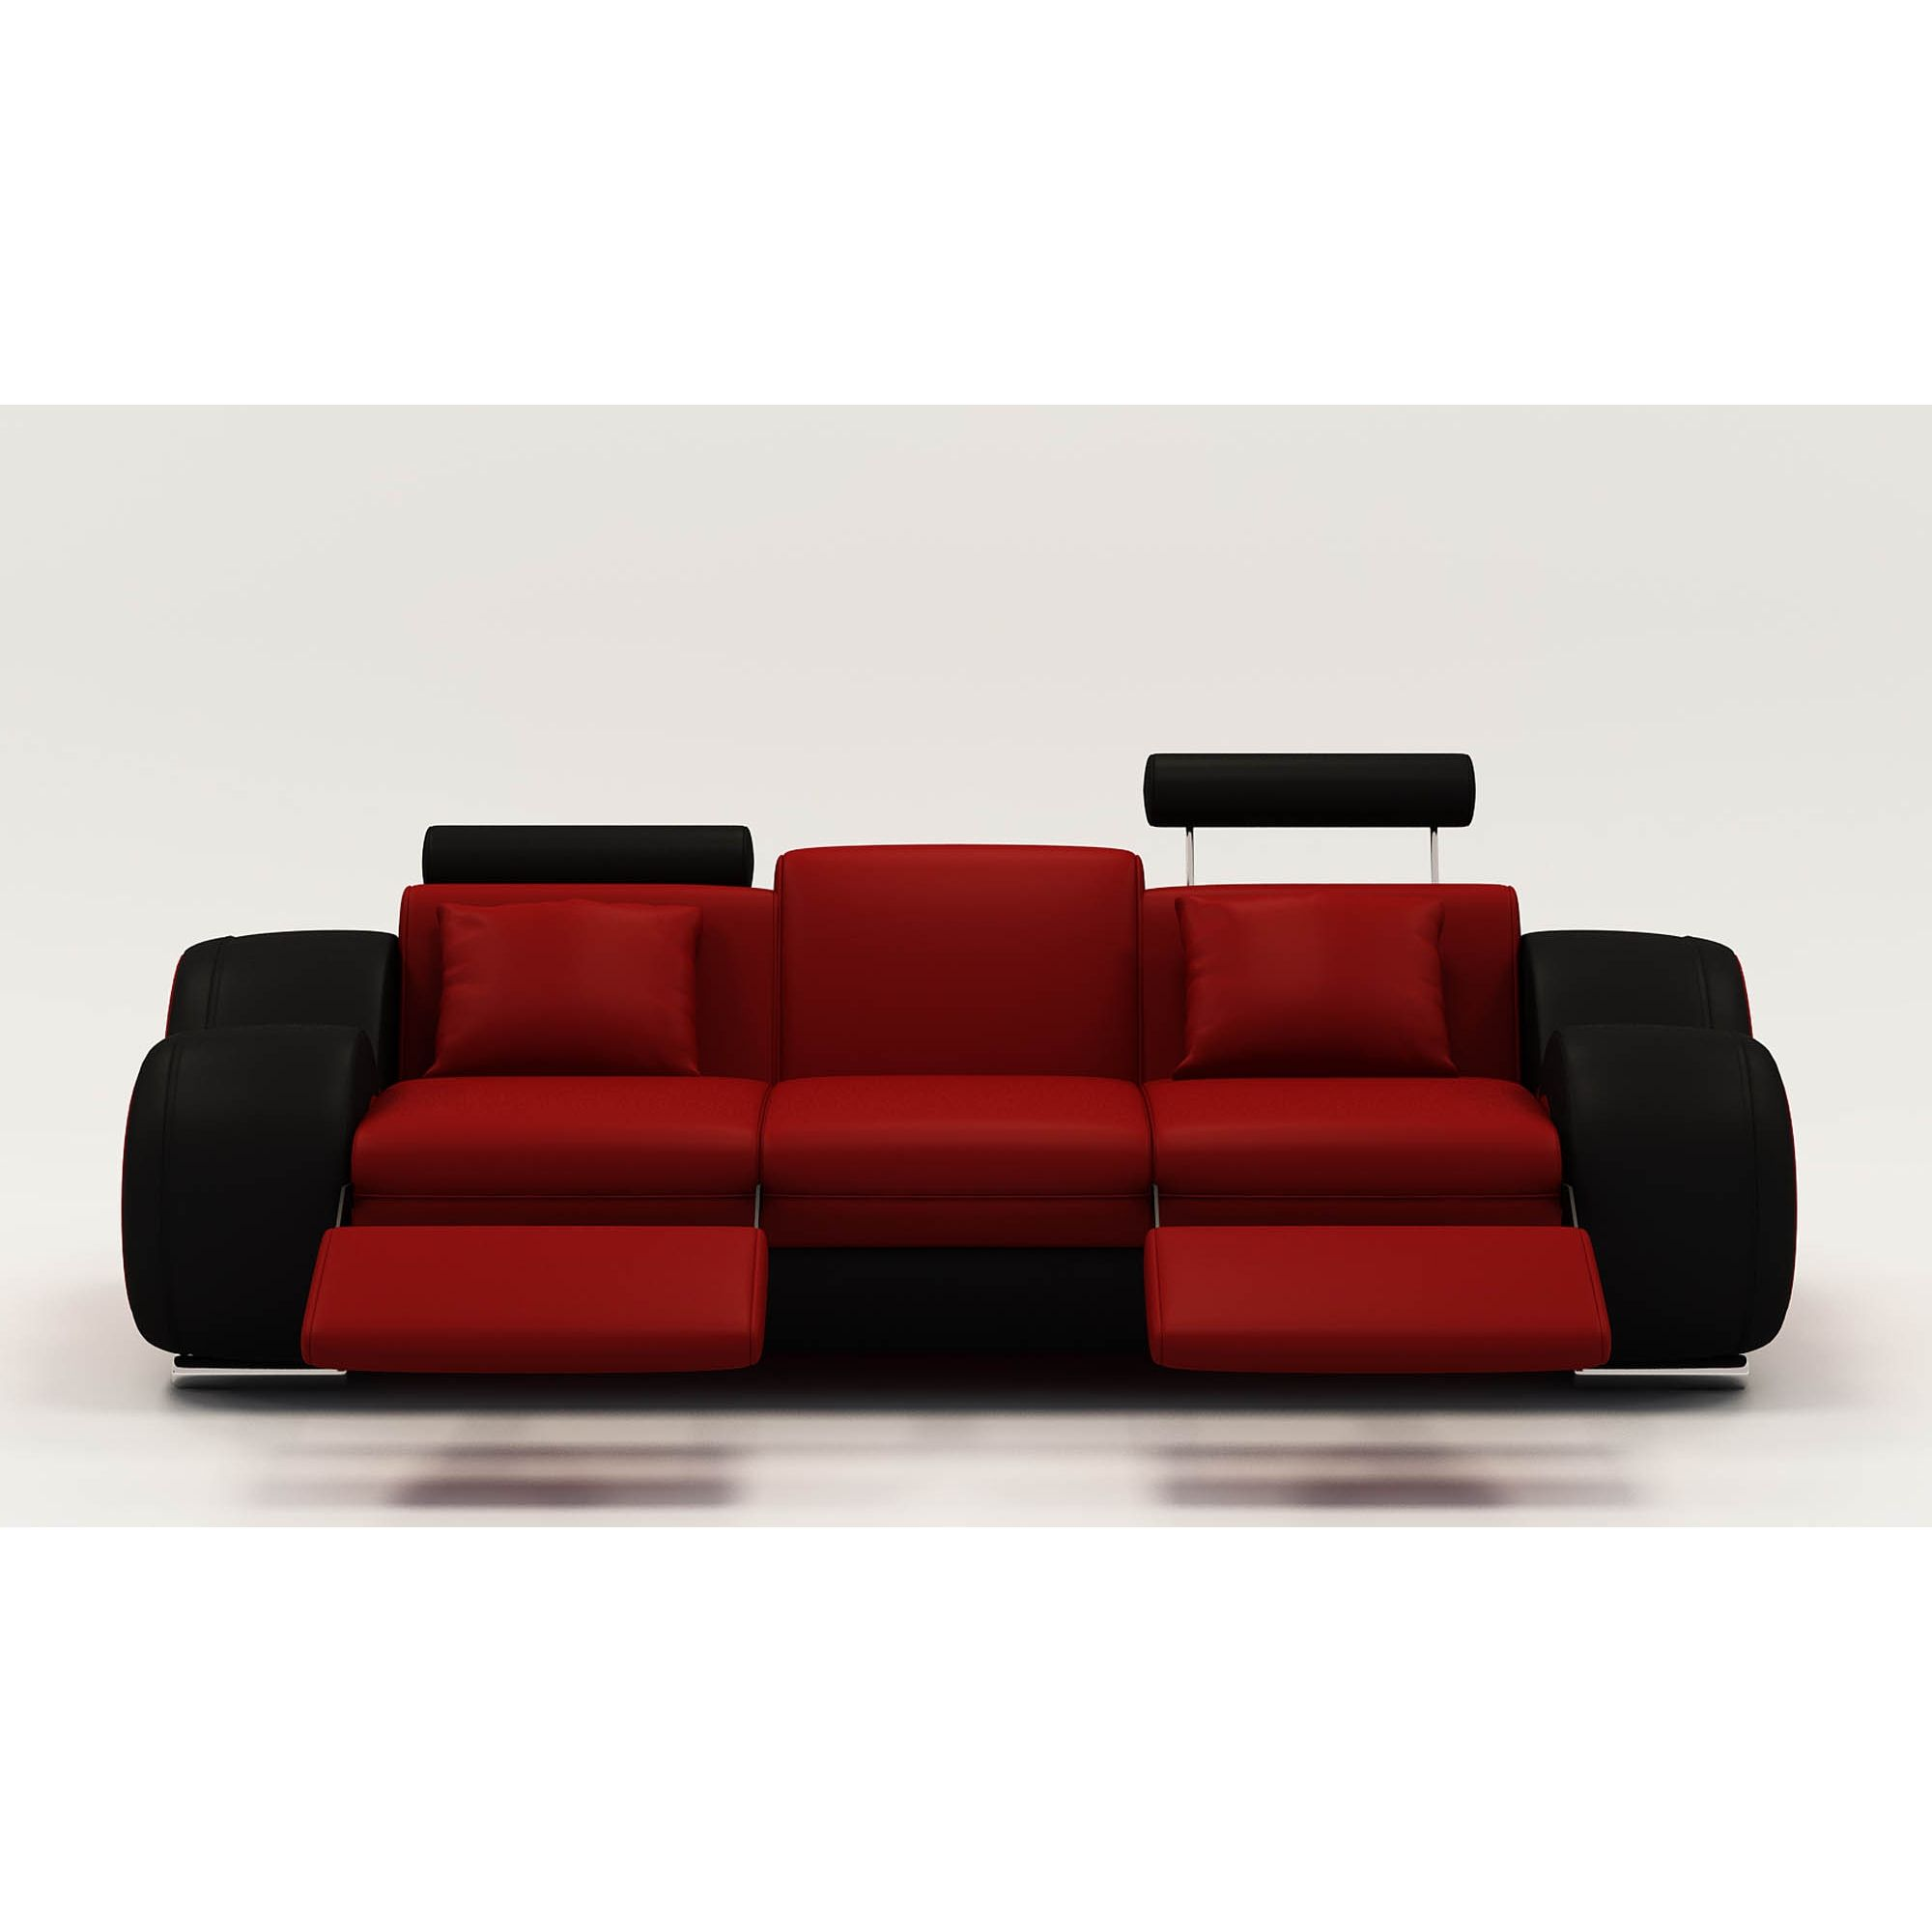 Deco in paris 7 canape design 3 places cuir rouge et - Canape 3 places design ...